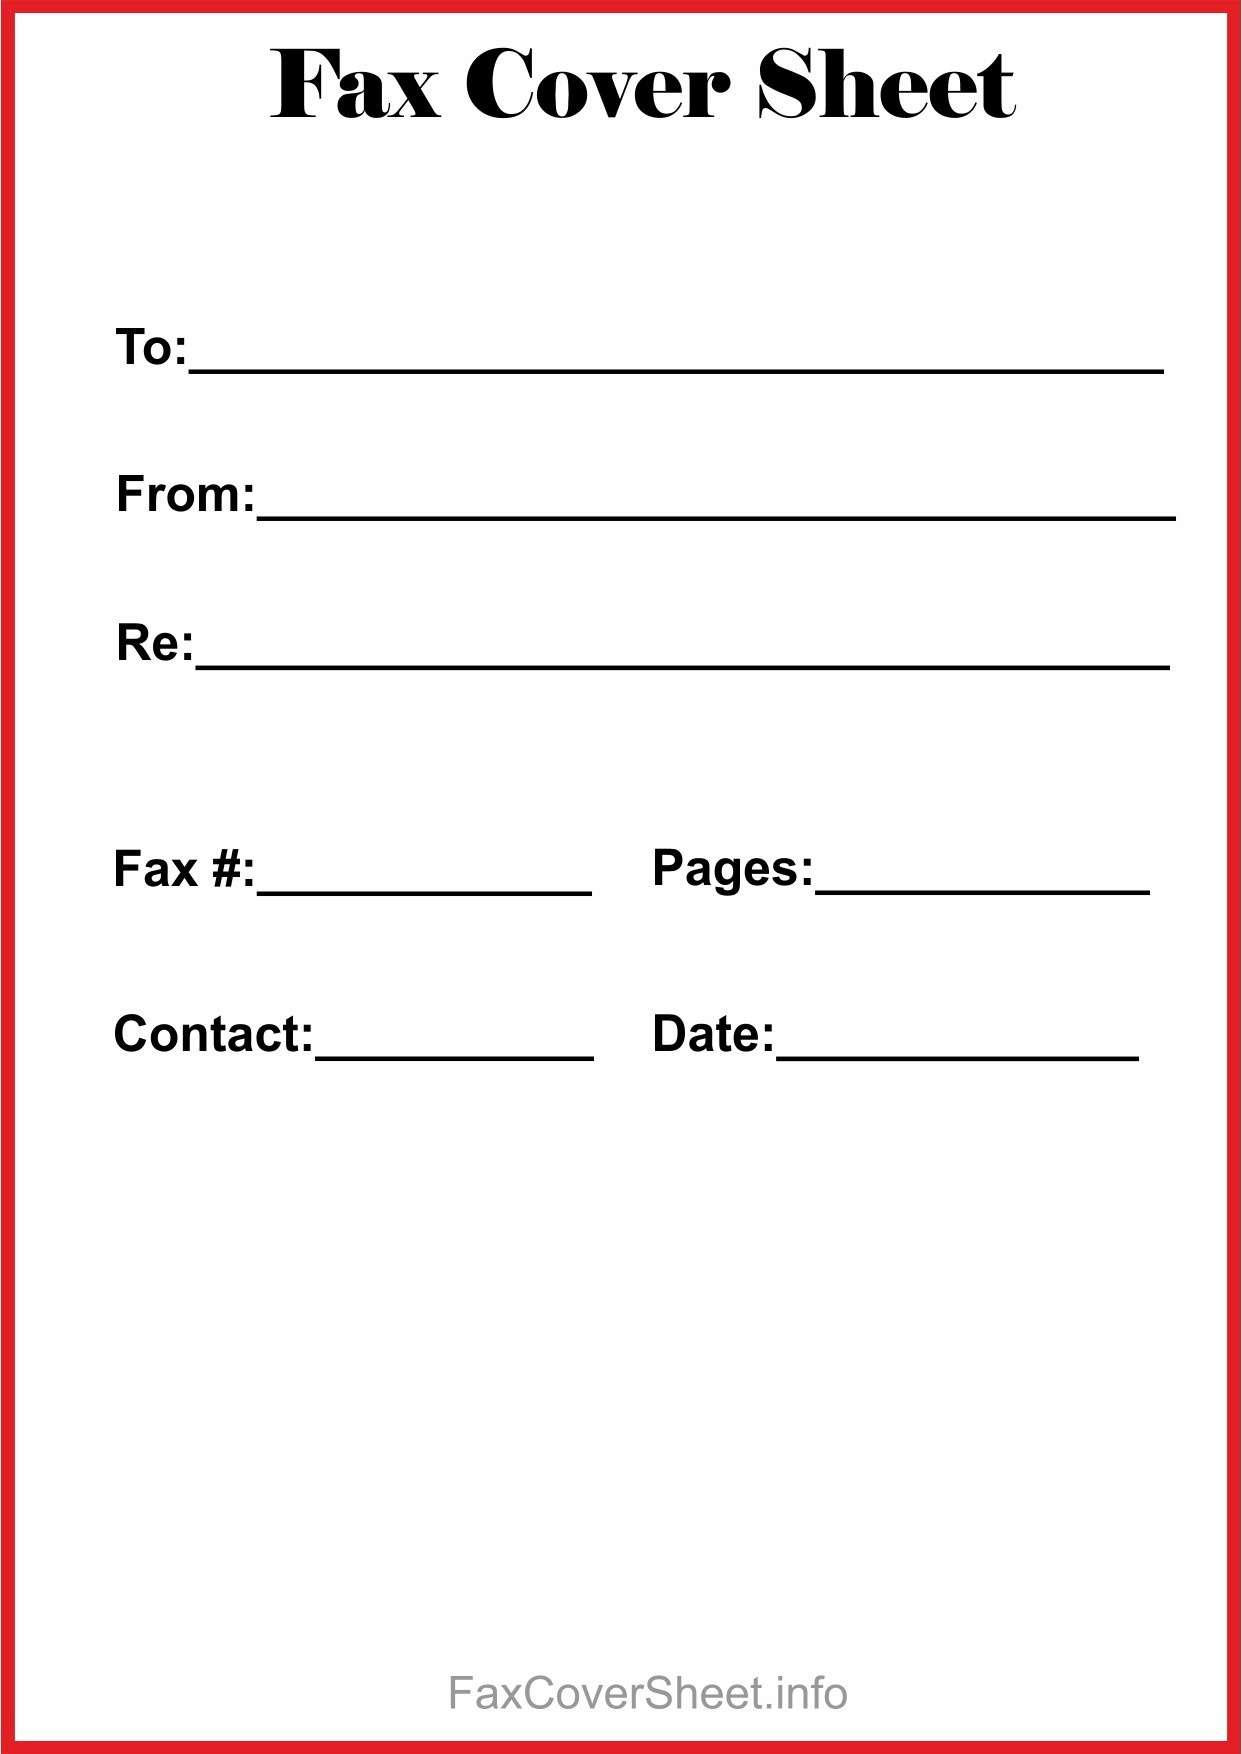 Fax Cover Sheet Fillable New Free Fax Cover Sheet Template - Free Printable Fax Cover Sheet